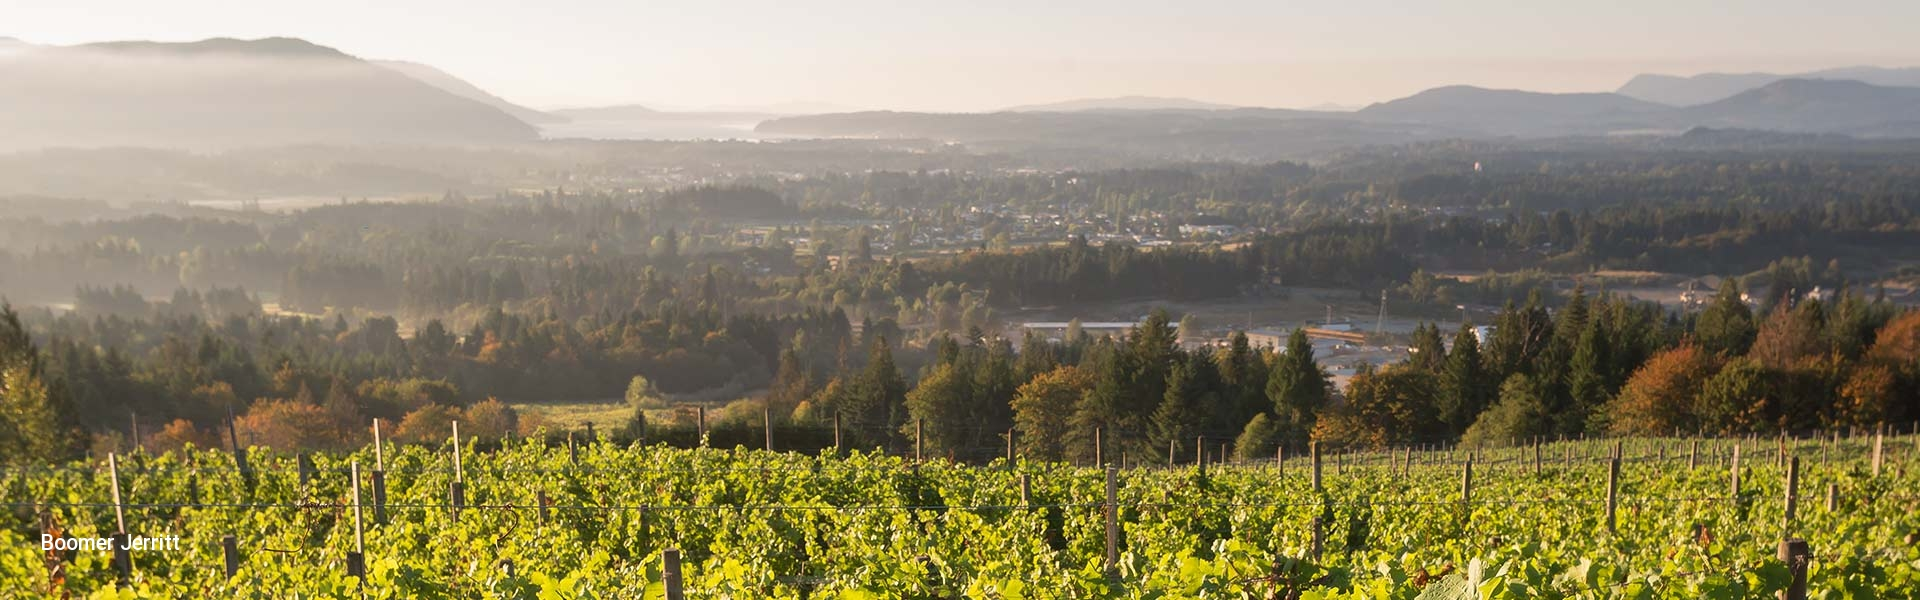 Vancouver Island Vineyard and Winery